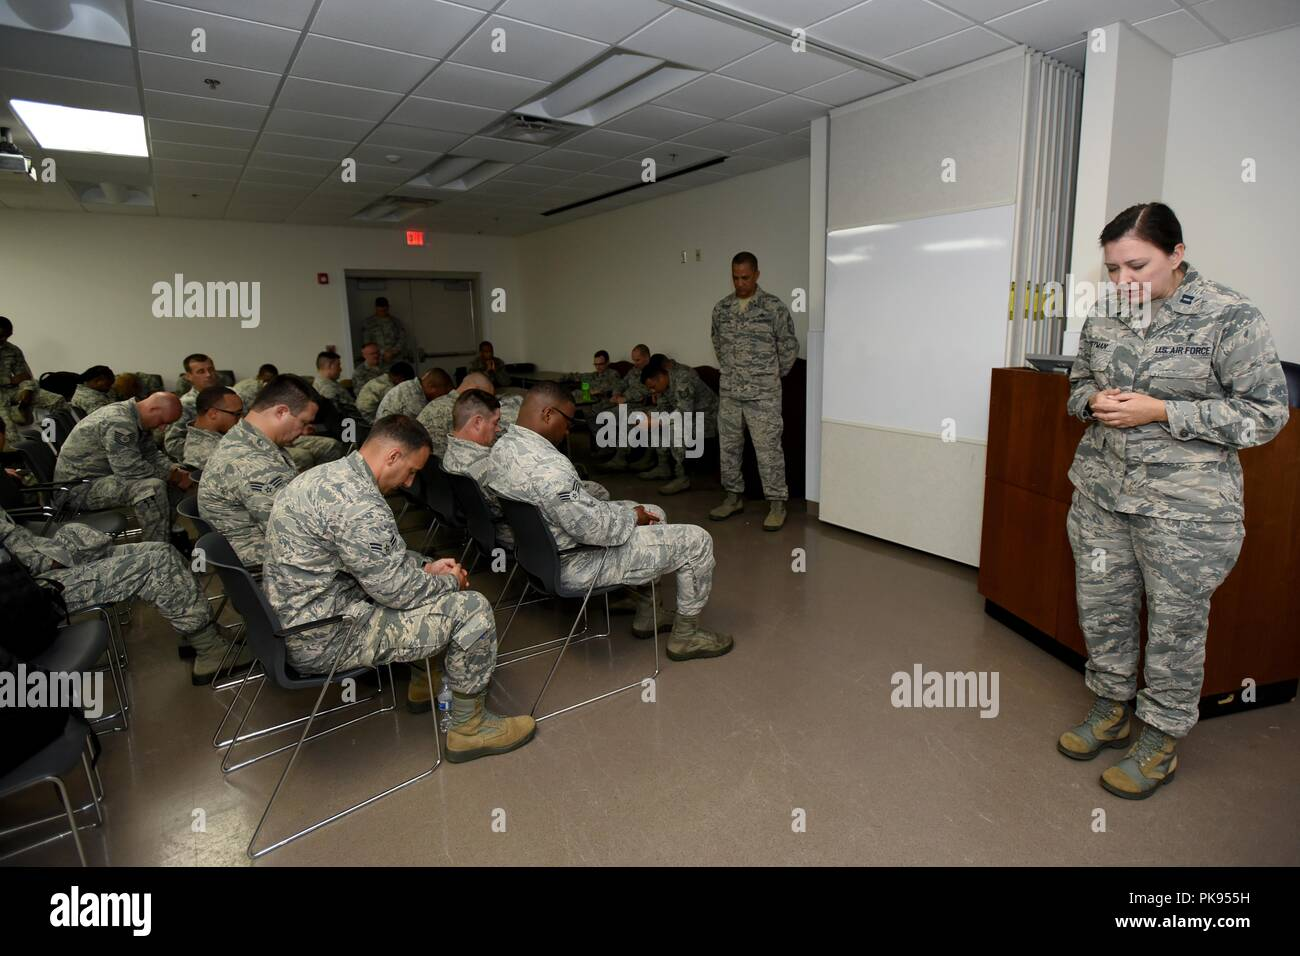 U.S. Air Force Capt. Christina Pittman, the 169th Fighter Wing chaplain prays with Airmen from the South Carolina Air National Guard as they prepare to deploy from McEntire Joint National Guard Base to Bluffton, South Carolina, to support partnered civilian agencies and safeguard the citizens of the state in advance of Hurricane Florence, September 10, 2018, September 10, 2018. Approximately 800 Soldiers and Airmen have been mobilized to prepare, respond and participate in recovery efforts as forecasters project Hurricane Florence will increase in strength with potential to be a Category 4 sto - Stock Image